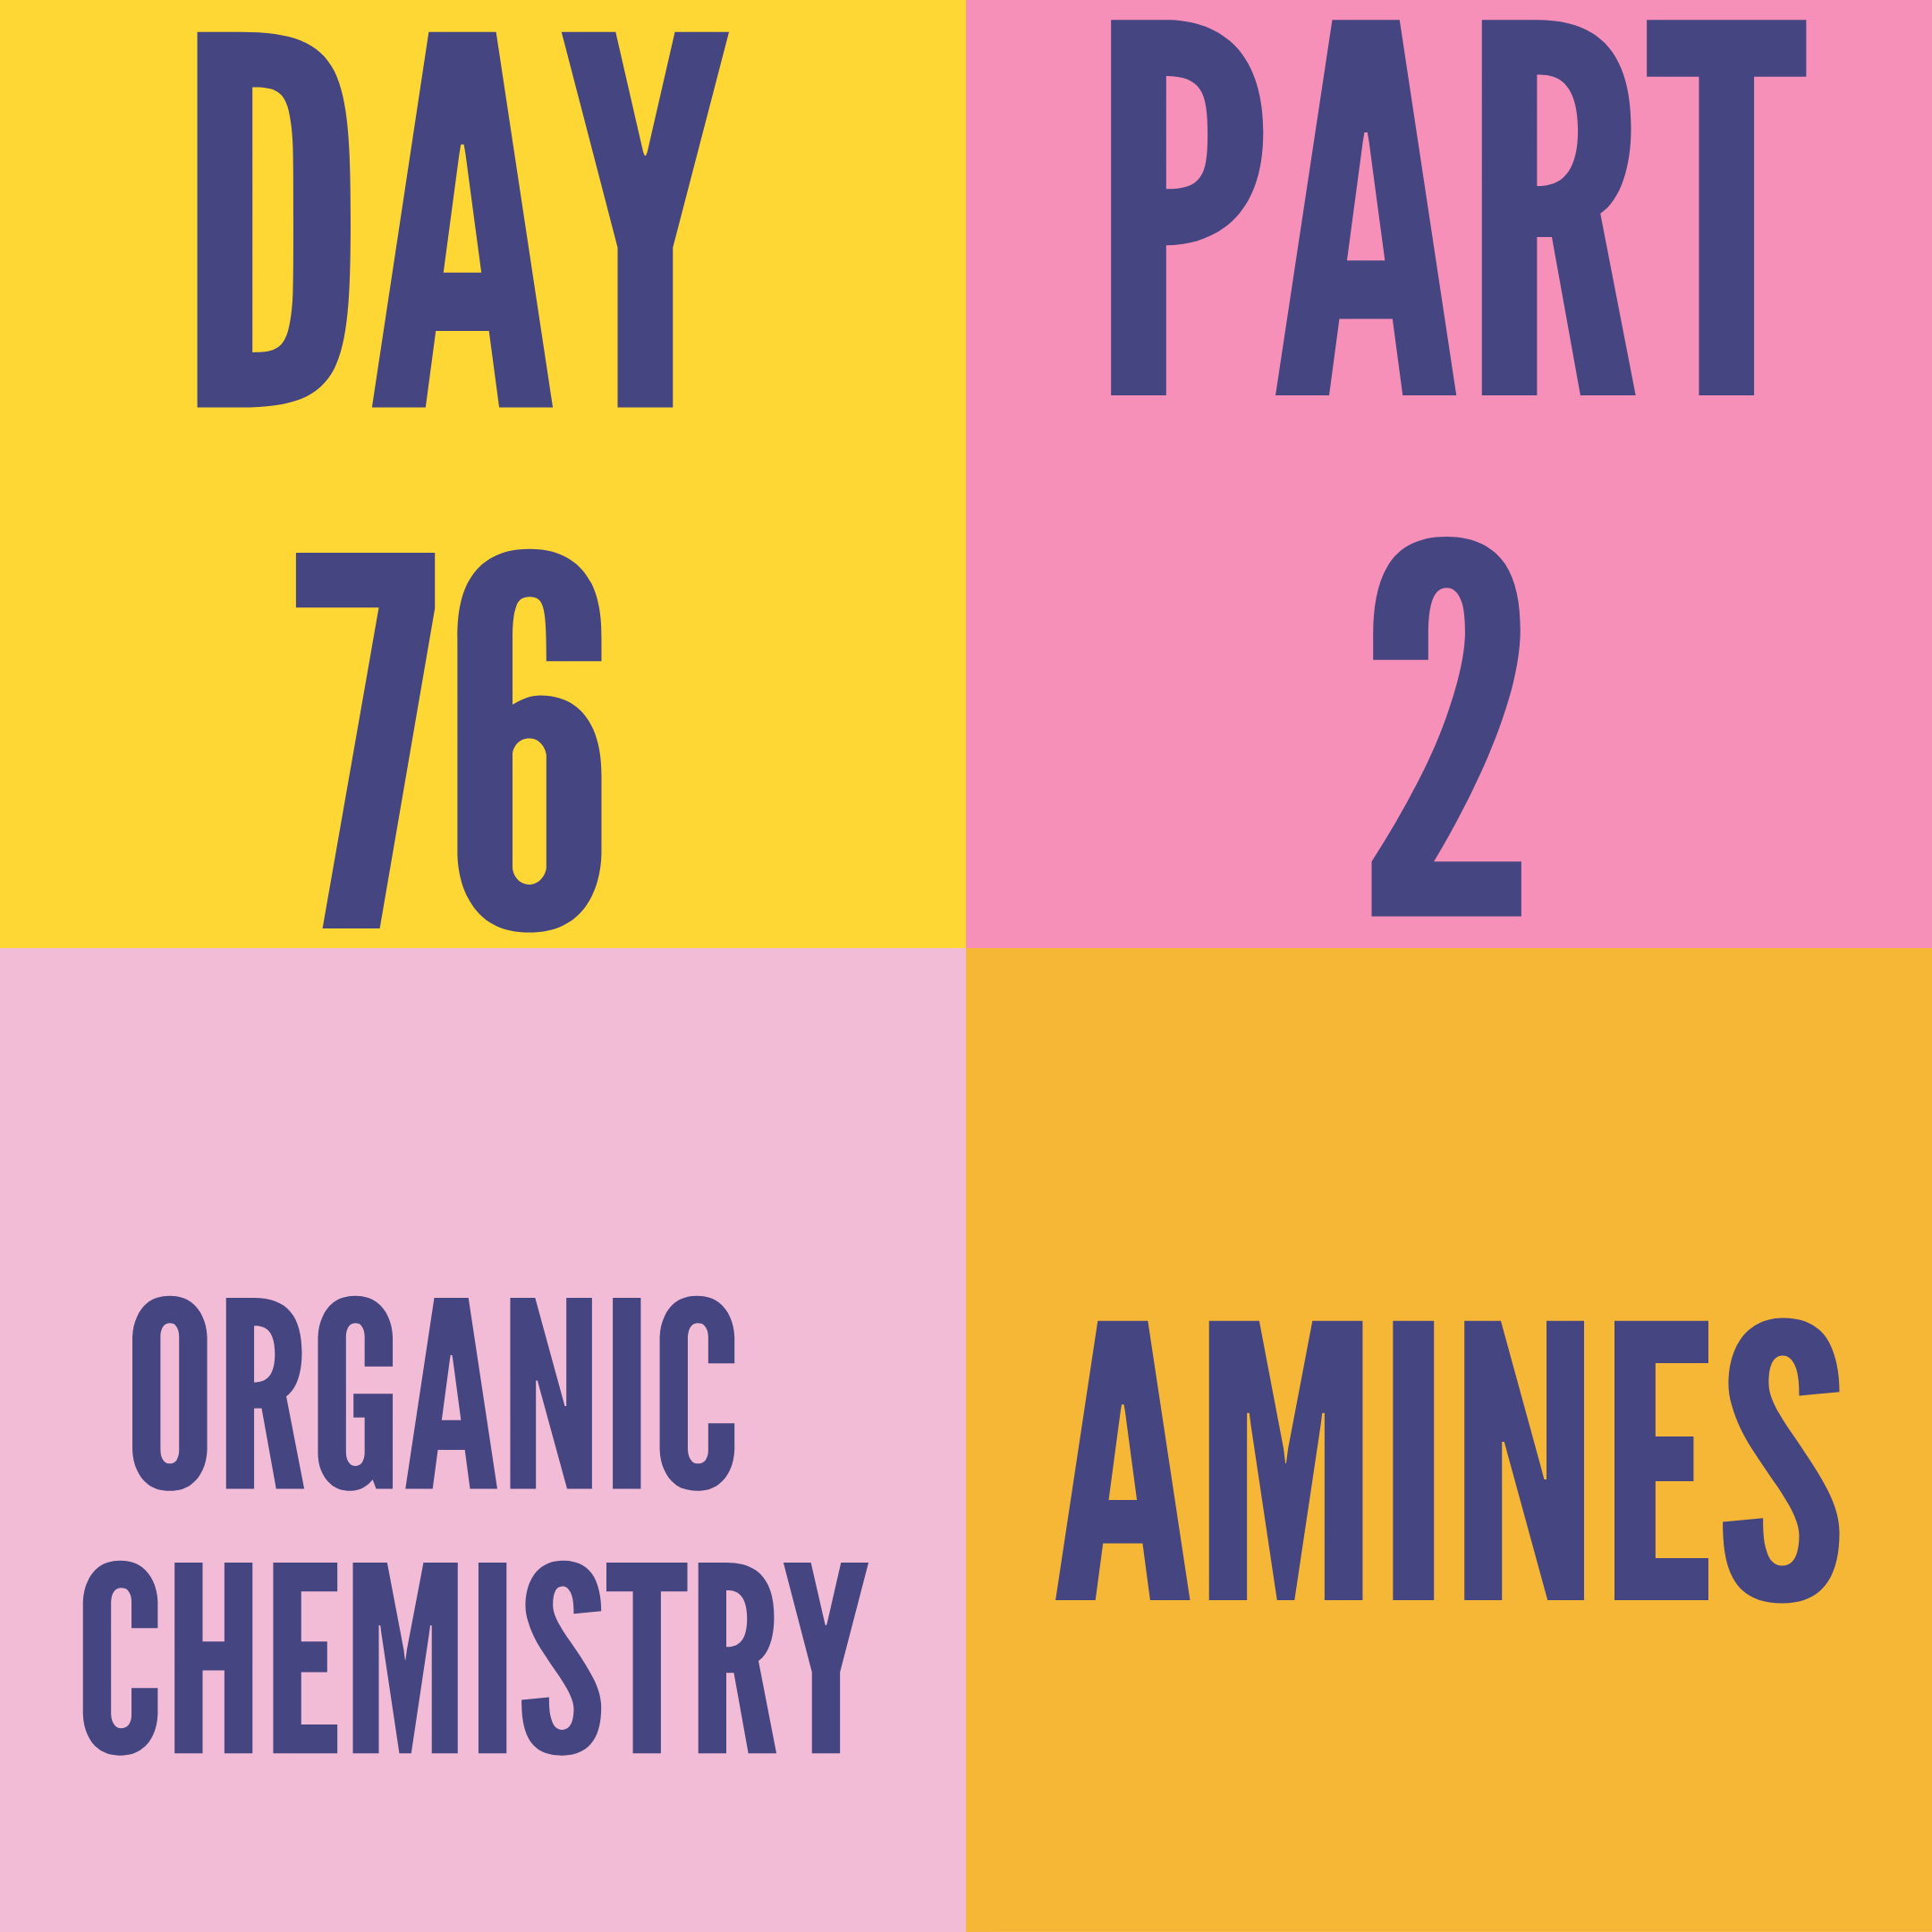 DAY-76 PART-2 AMINES